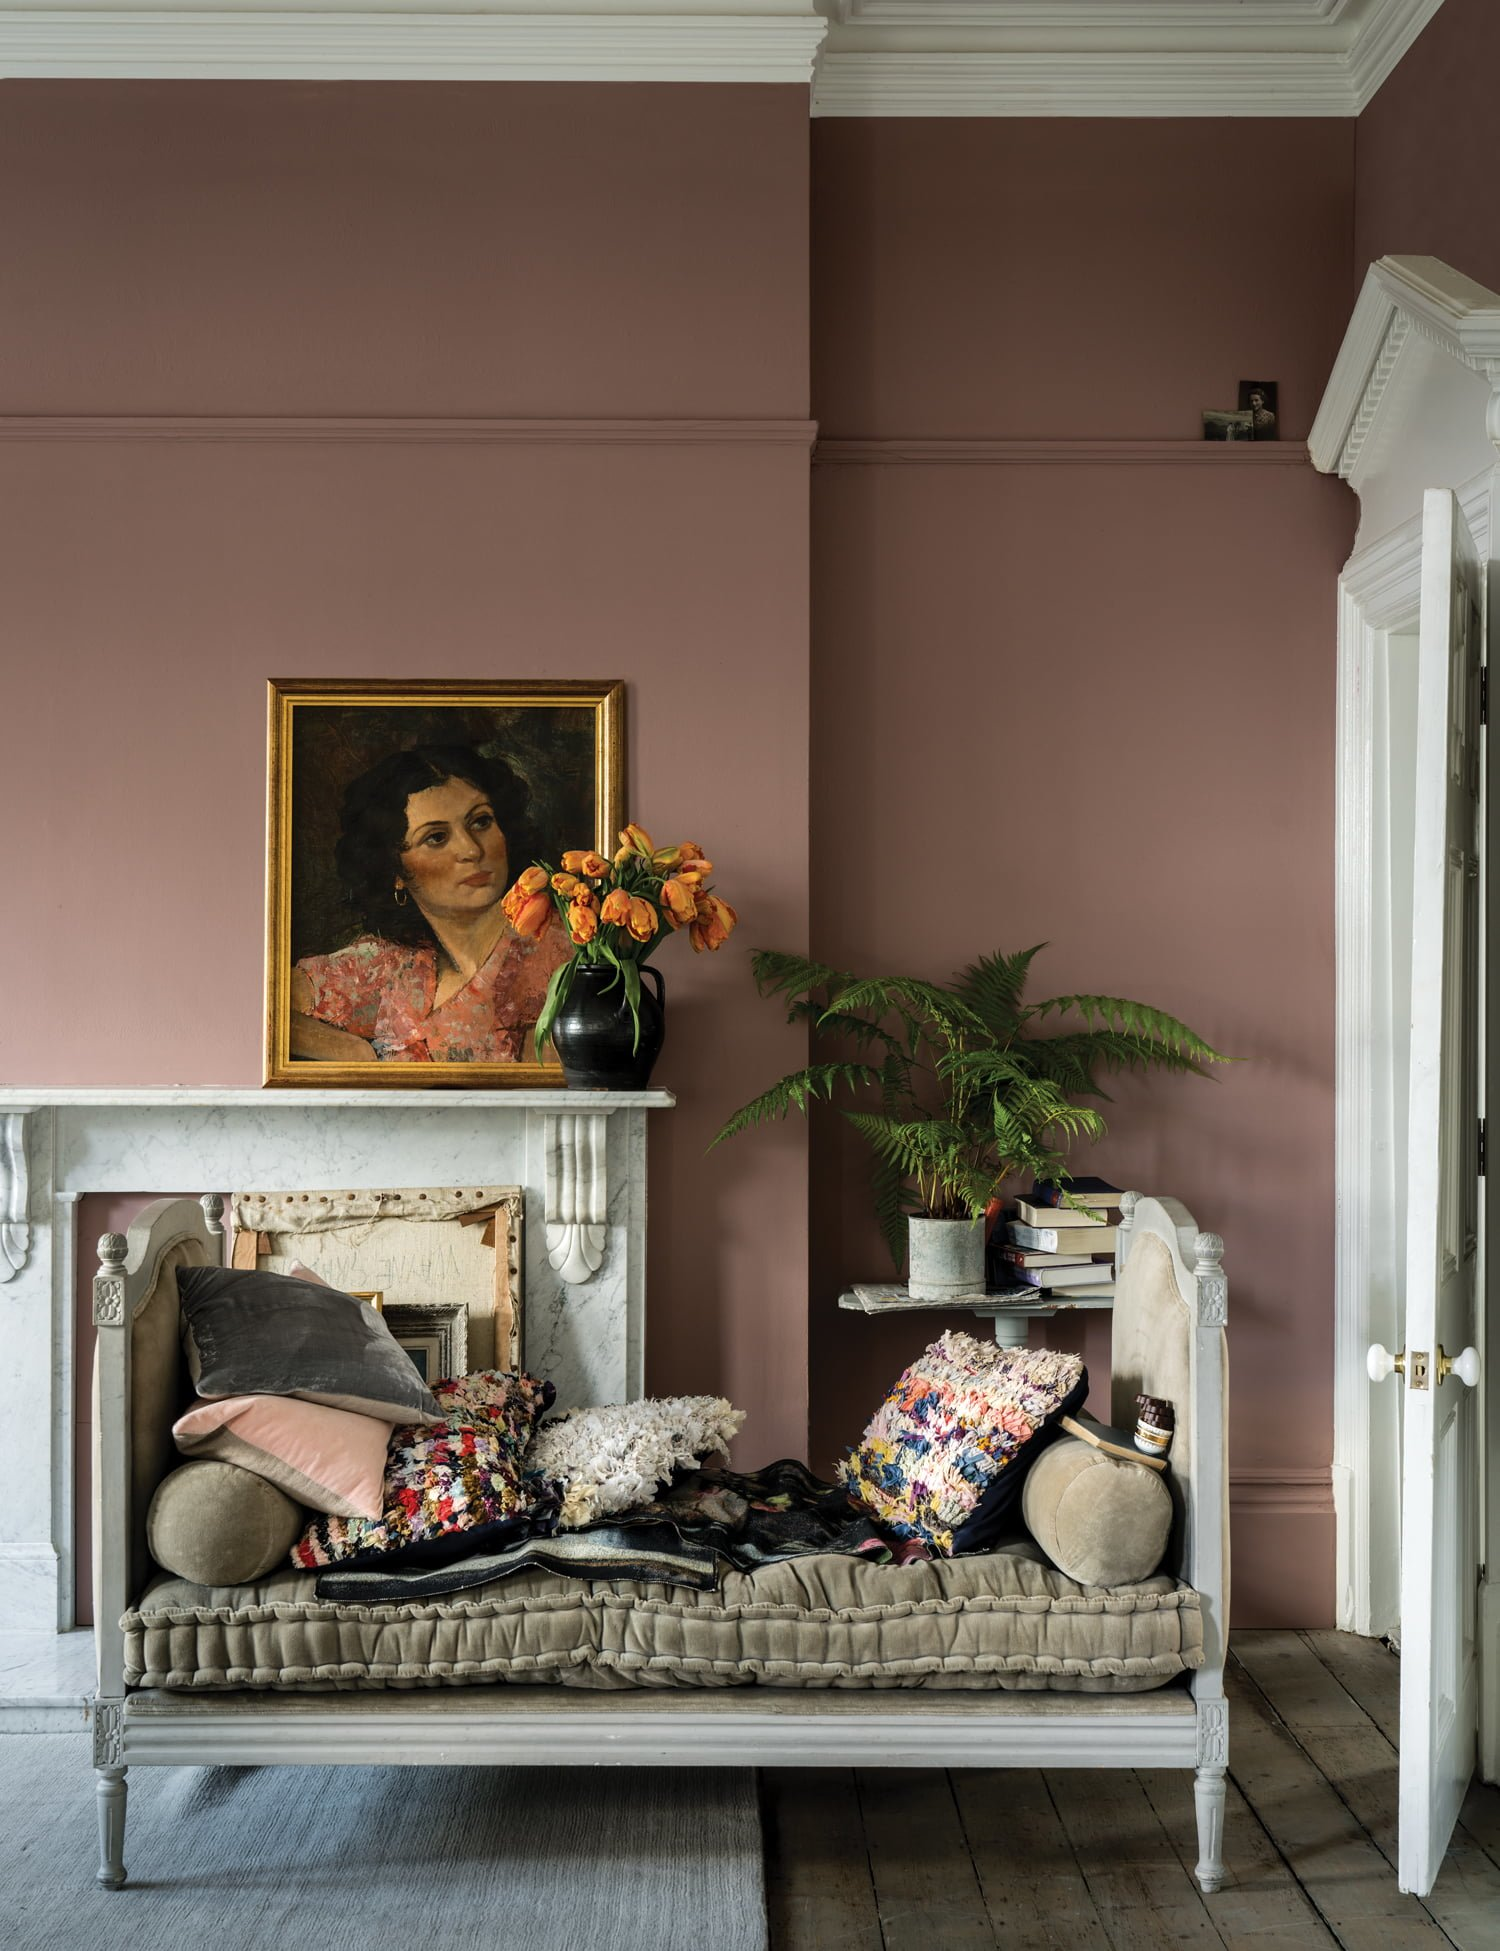 New Farrow & Ball paint colours 2018, Sulking Room Pink